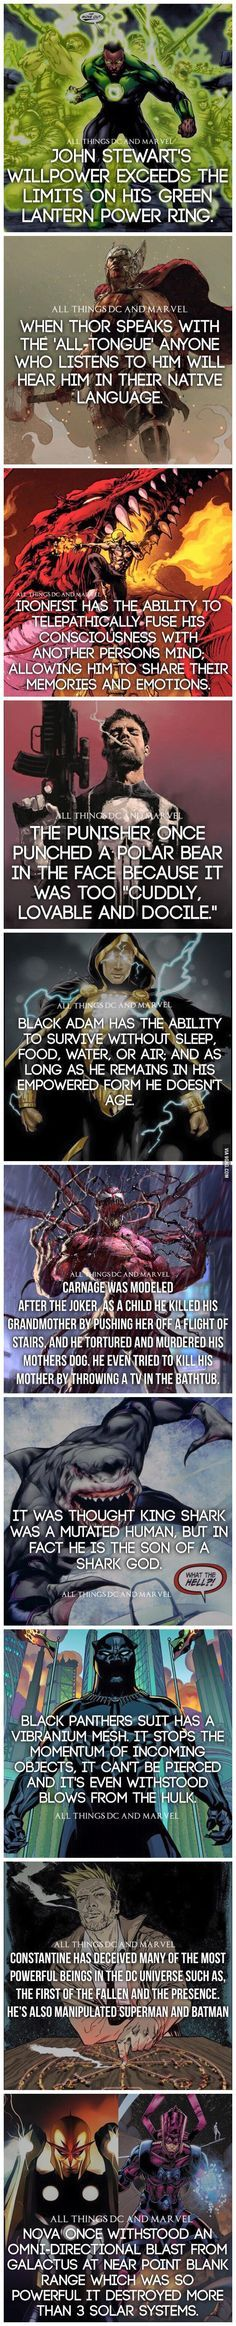 Superhero Facts: Part 5 - 9GAG